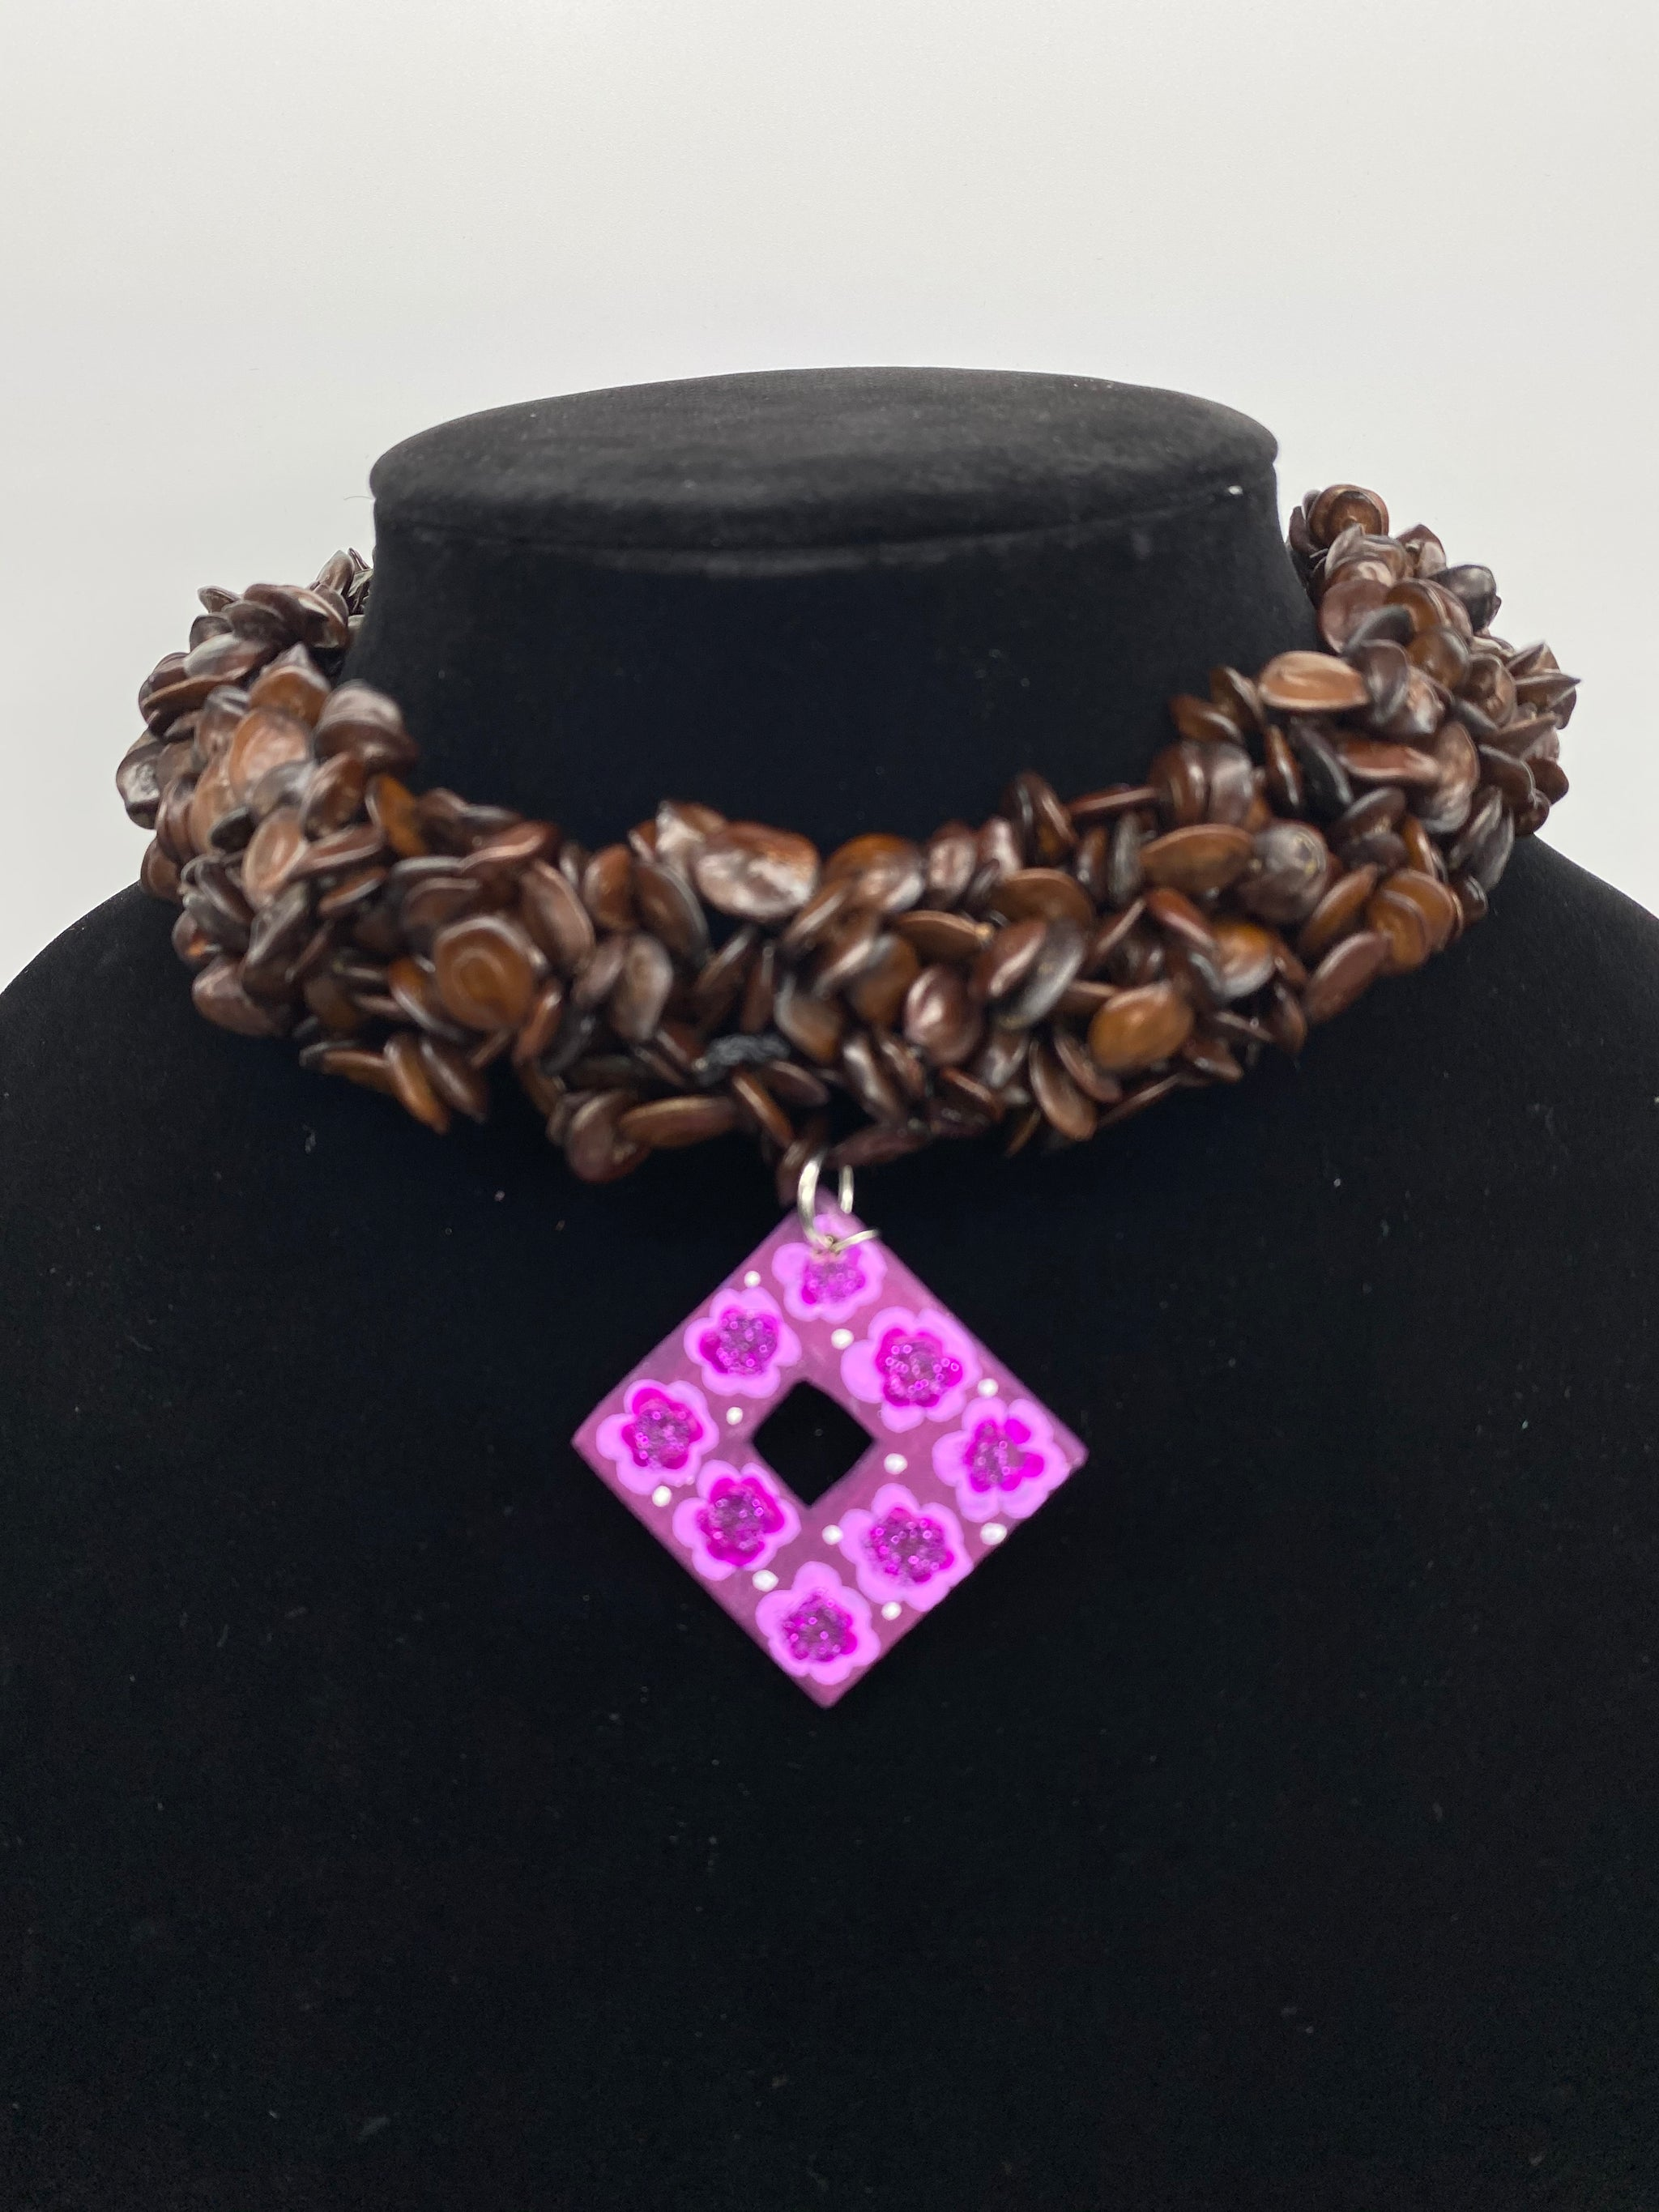 Gorgeous Mexican Artisan Necklace - Corazón Clothing